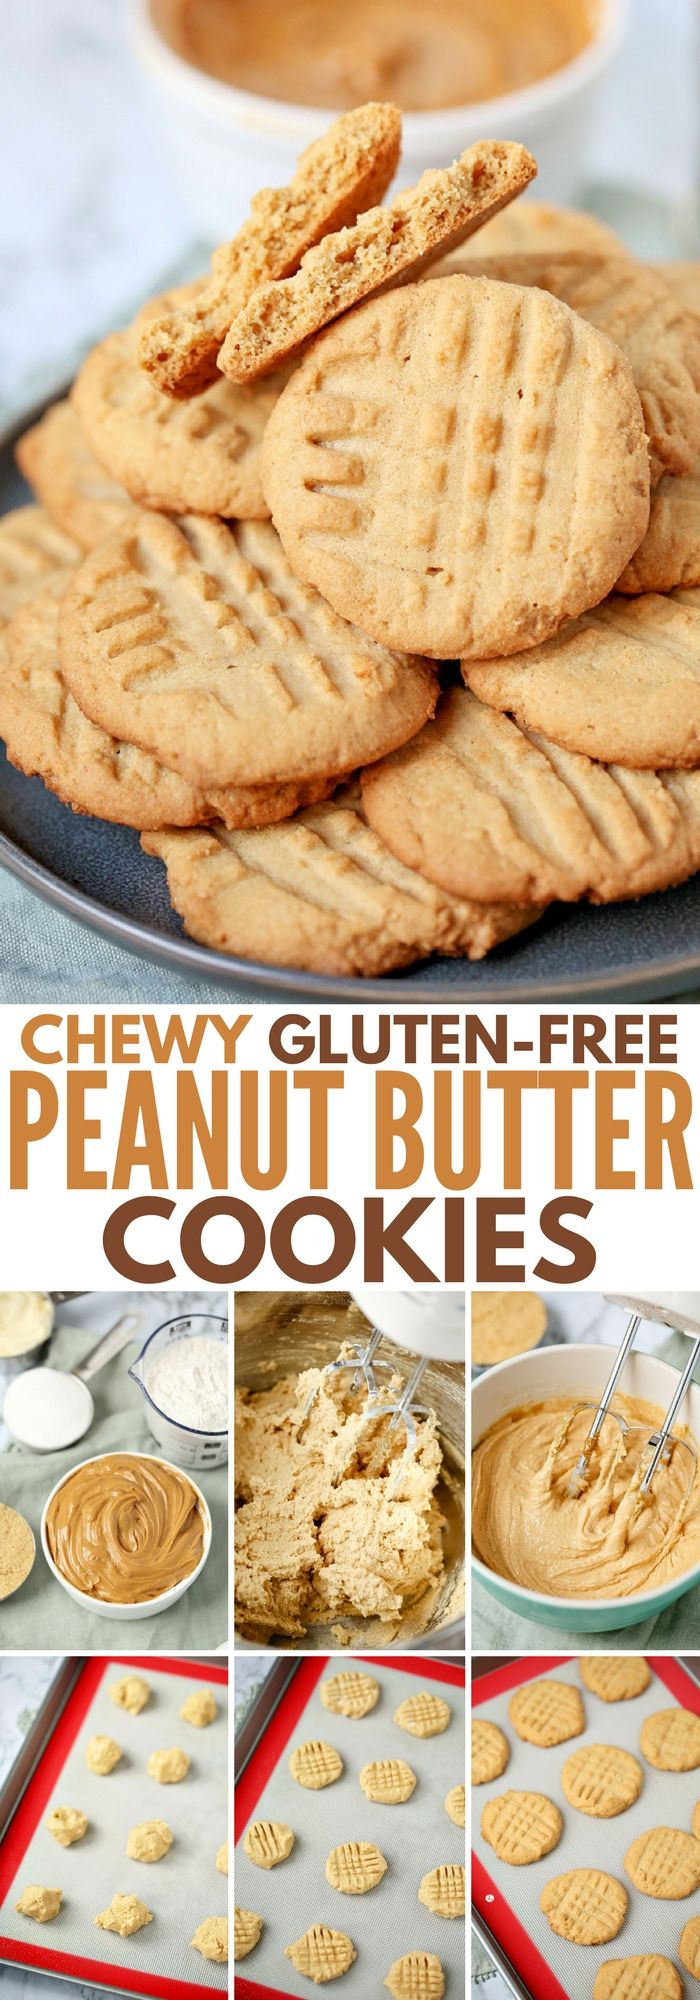 Chewy Gluten-Free Peanut Butter Cookies - this easy recipe uses common ingredients that make a cookie so delicious, no one will guess it's gluten-free!